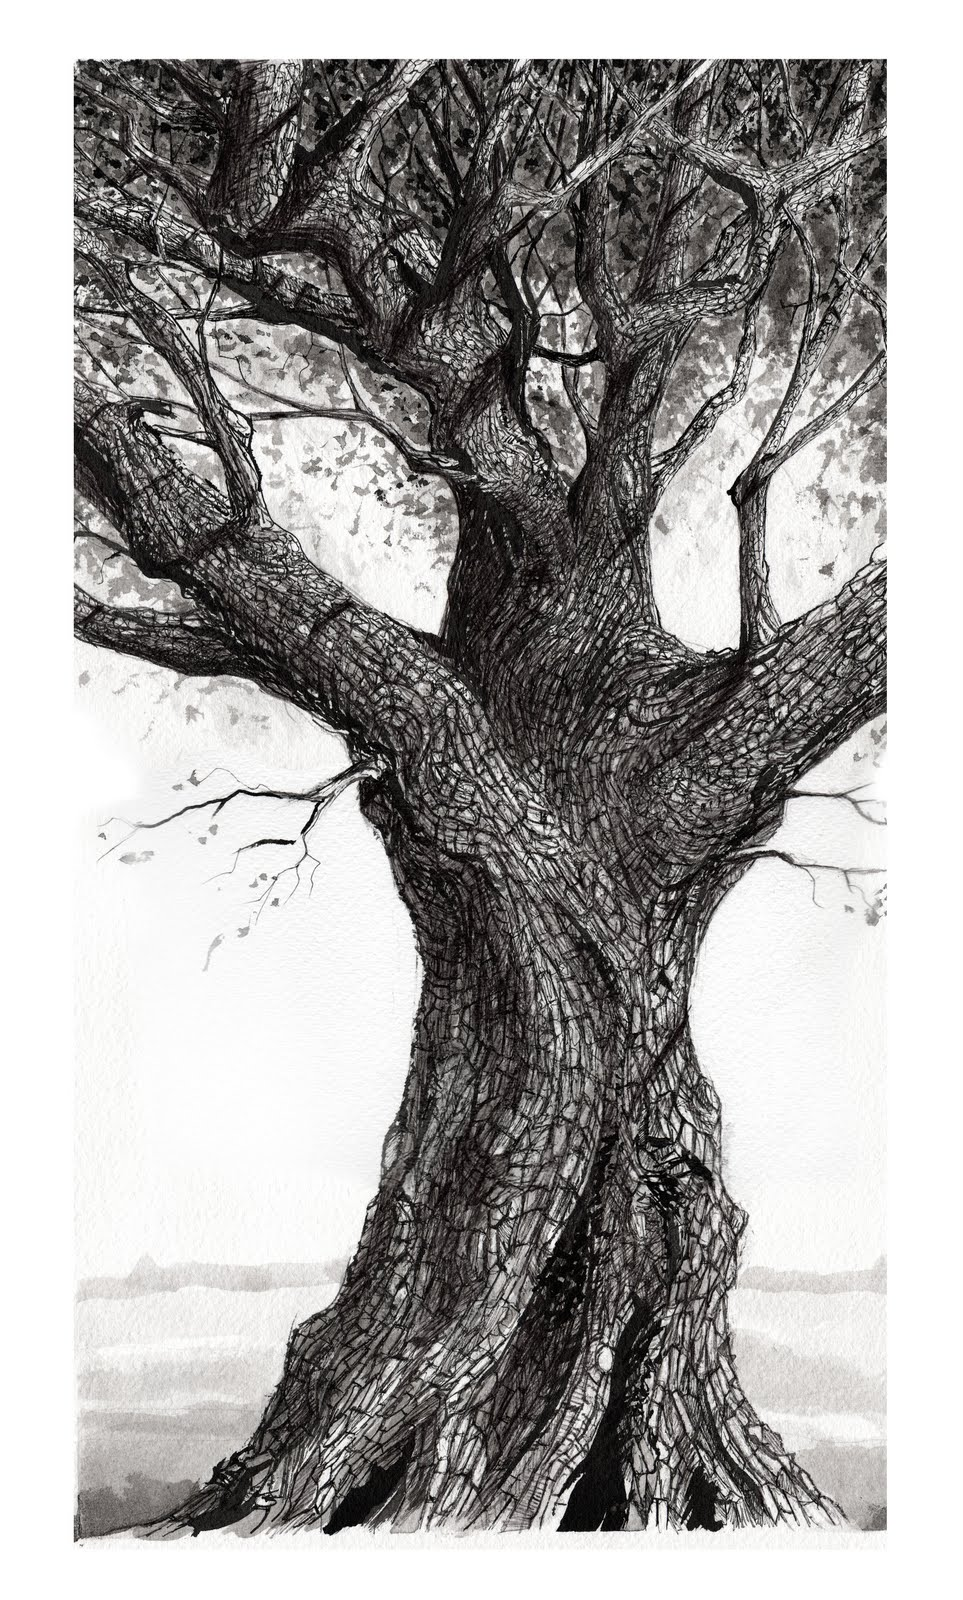 It's just a photo of Critical Tree Pen Drawing